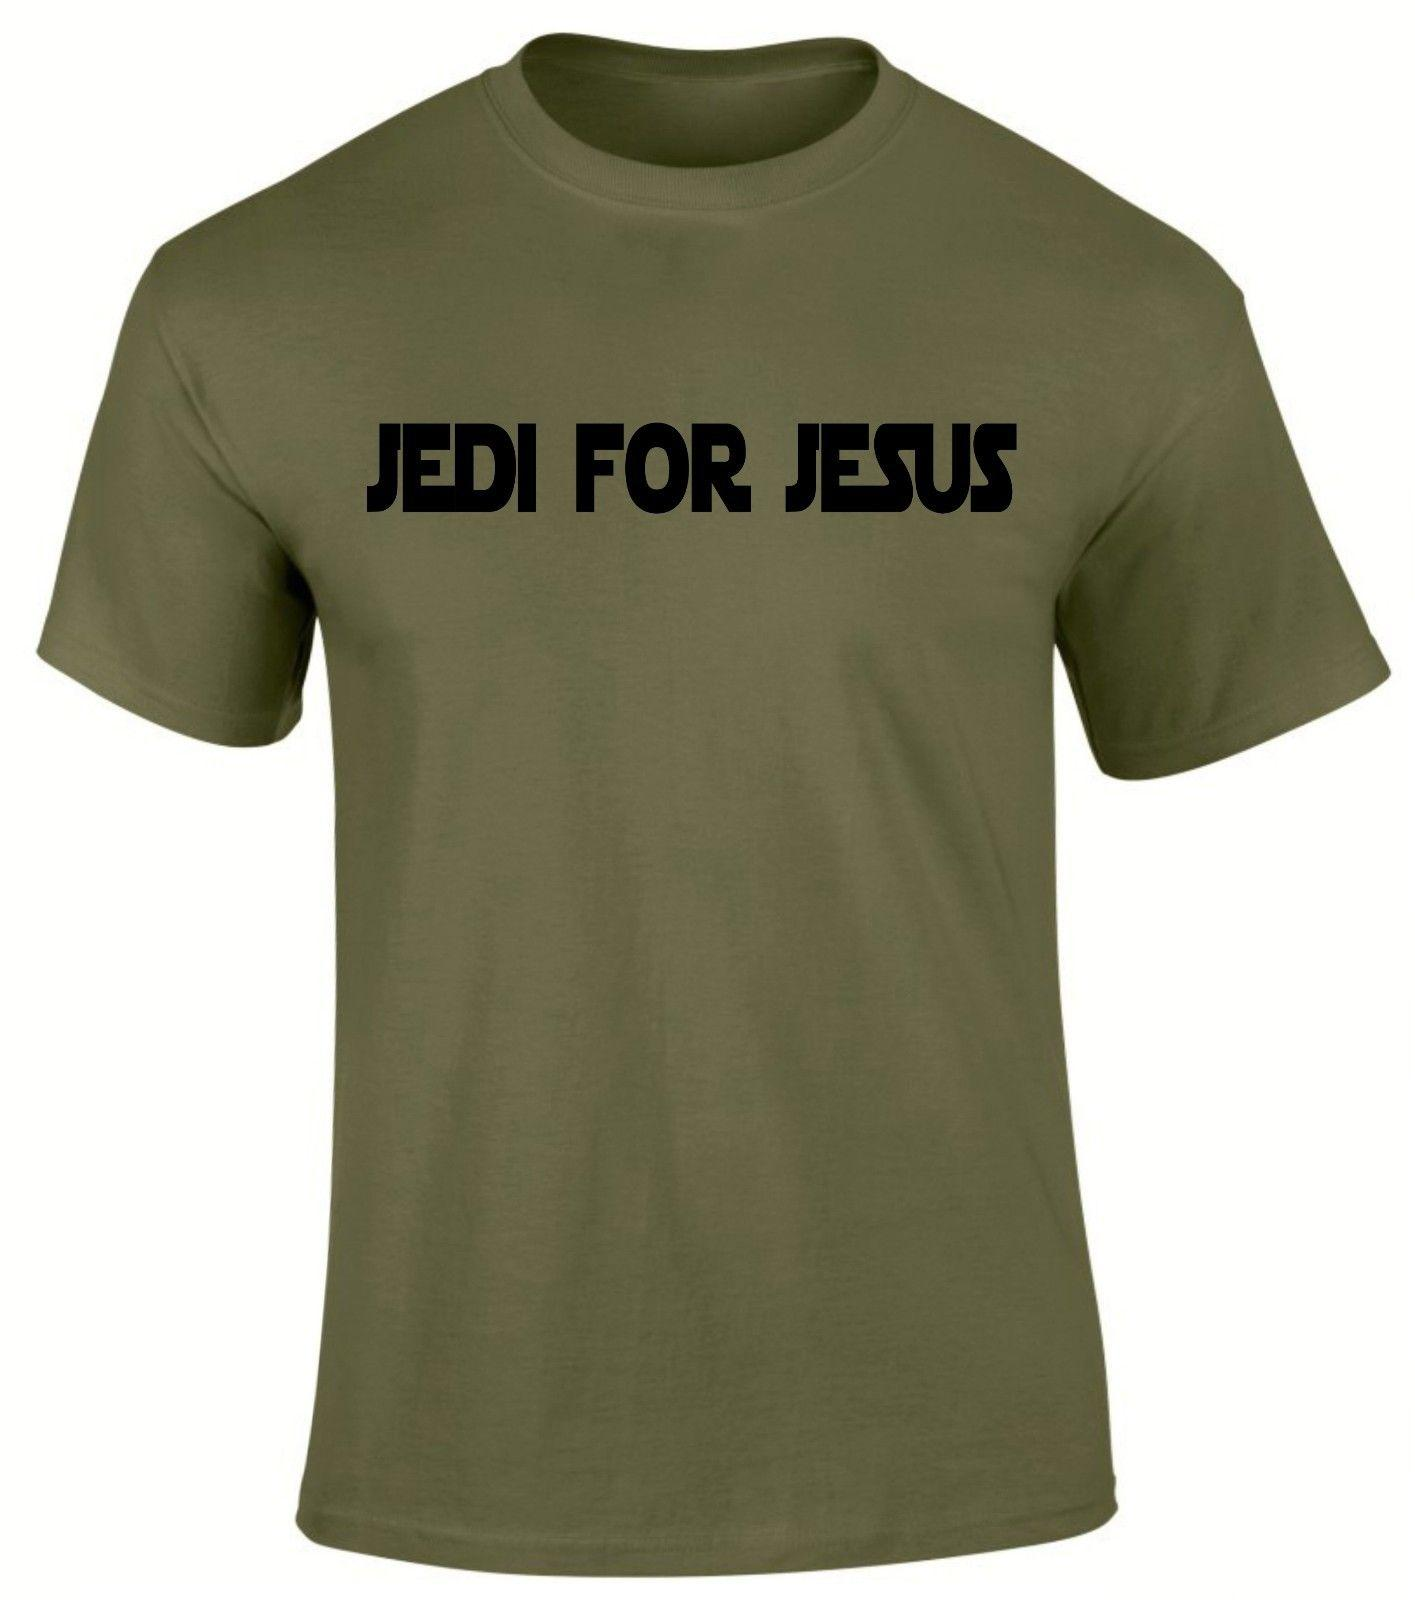 Jedi for Jesus Christian Gospel Church Scriptures Camiseta hombre